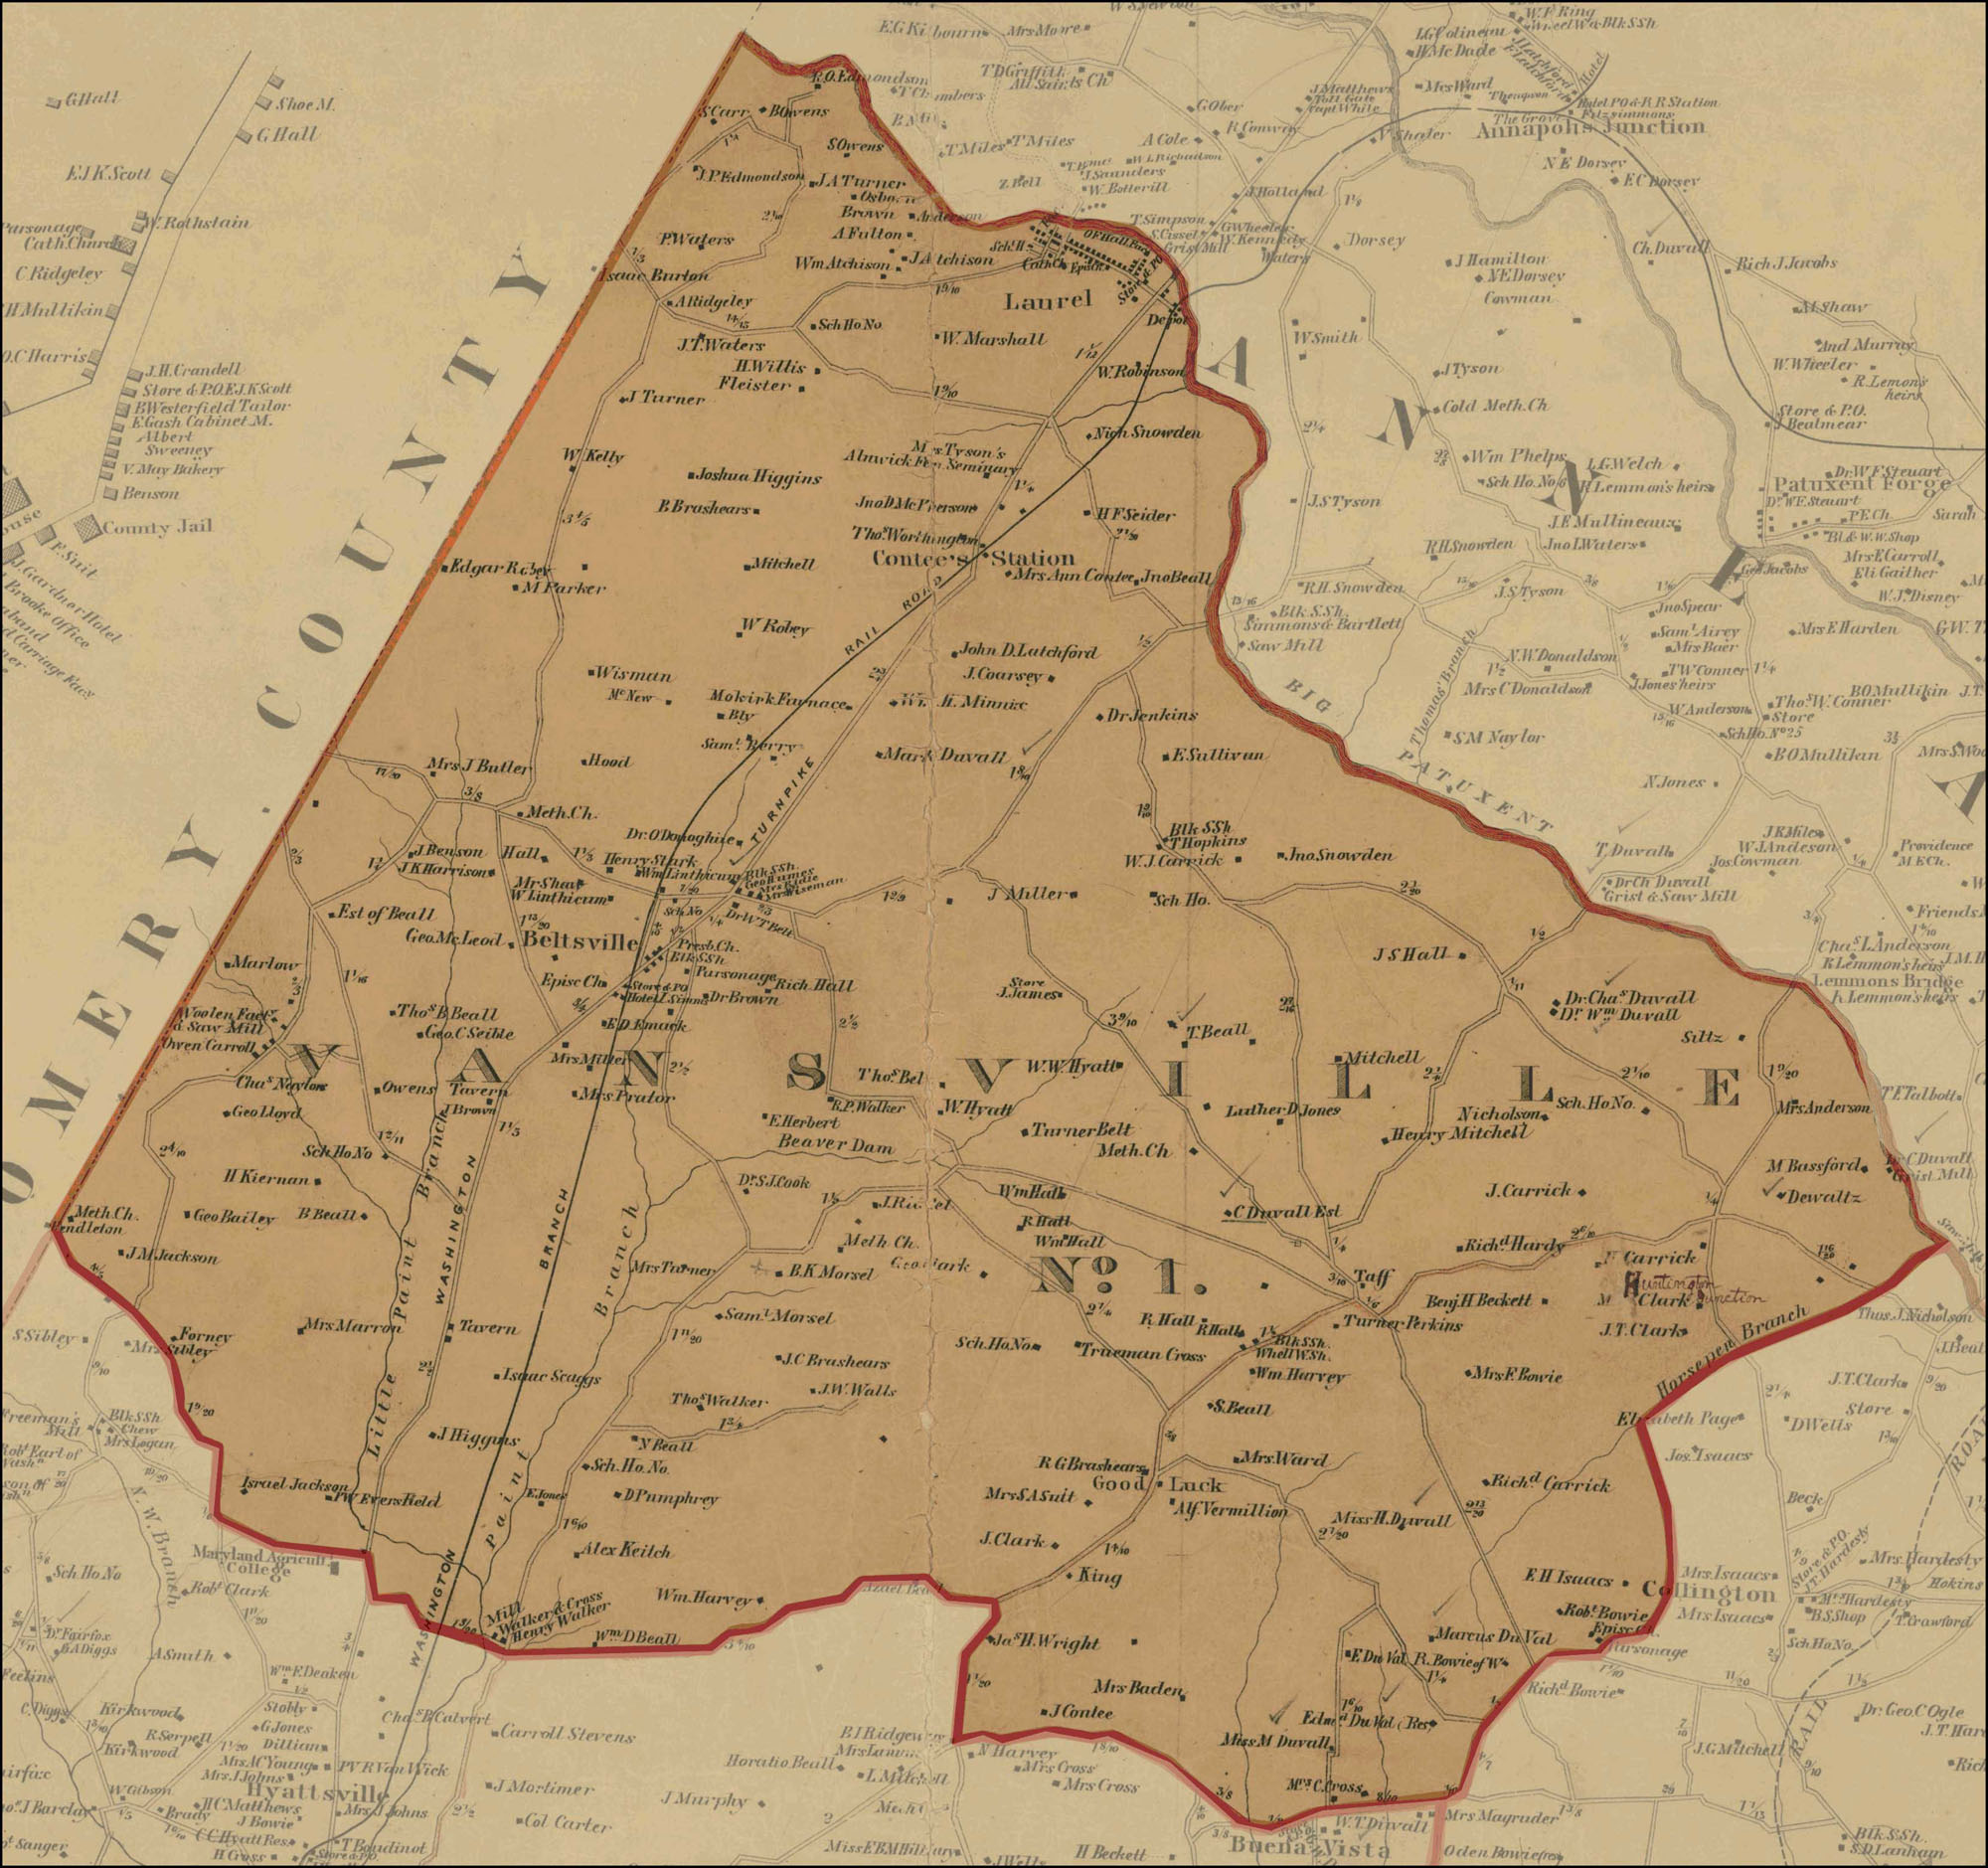 Maps of Maryland Counties